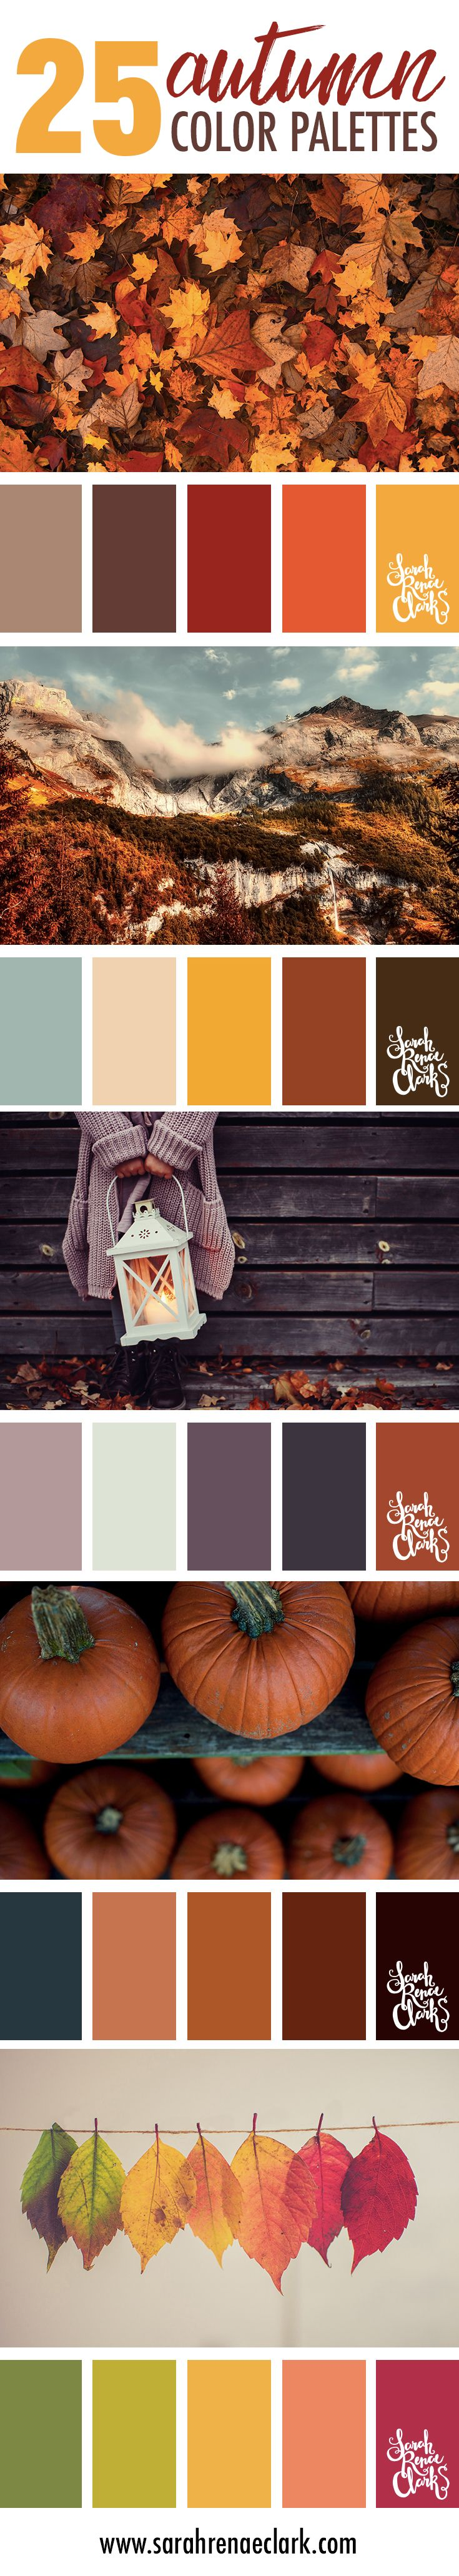 25 Autumn color schemes | Click for more fall color combinations, mood boards and seasonal color palettes at http://sarahrenaeclark.com